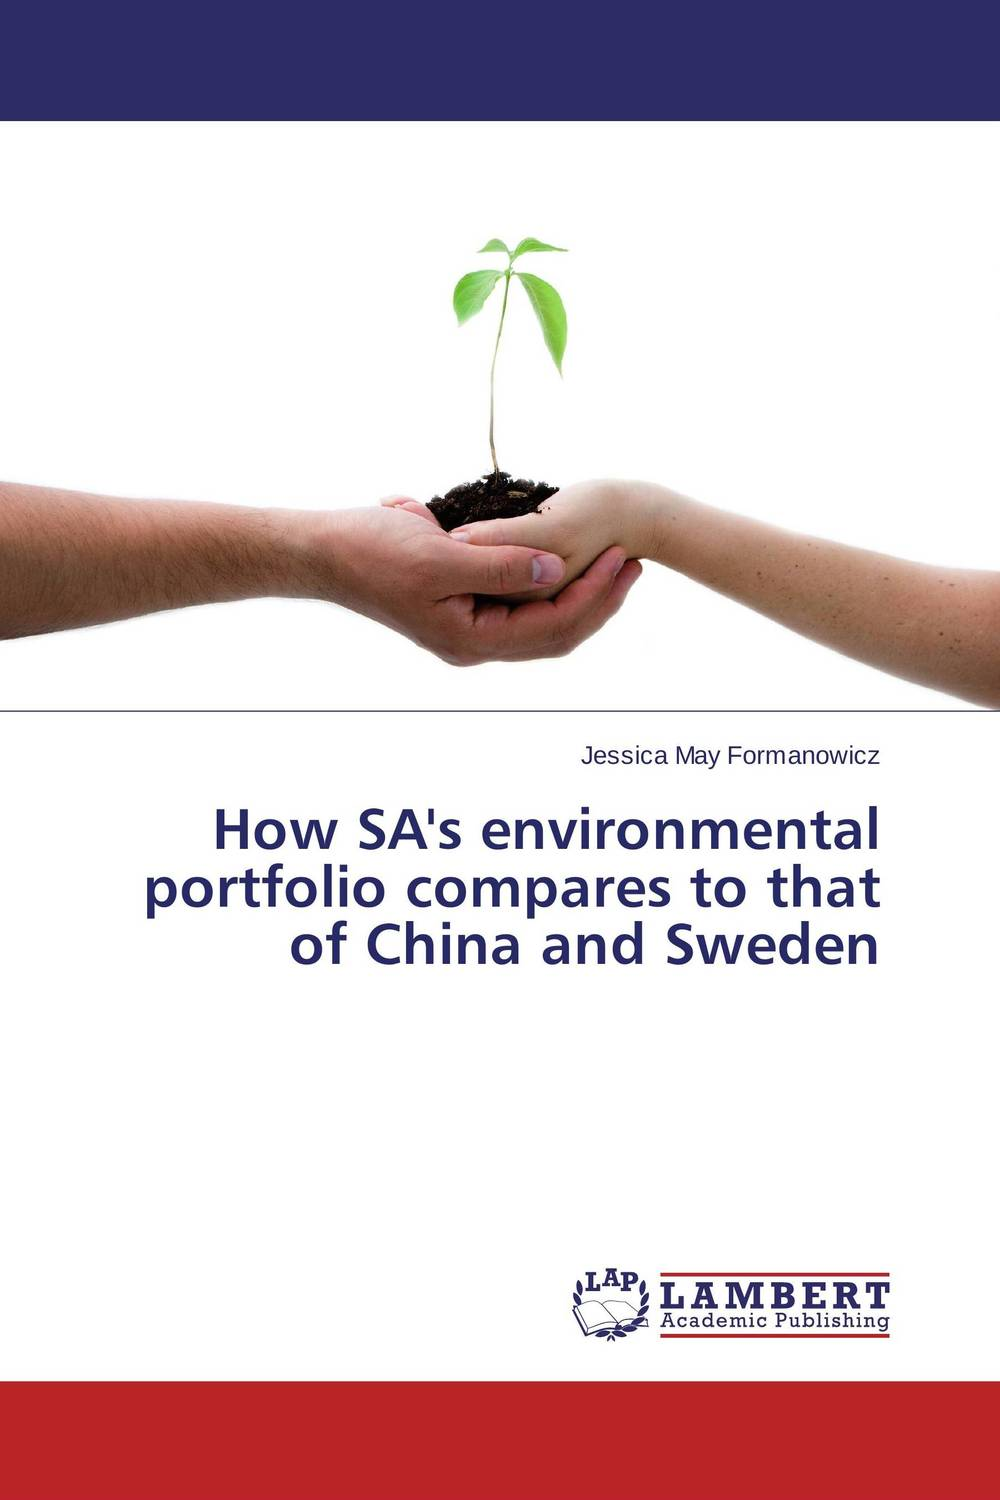 How SA's environmental portfolio compares to that of China and Sweden